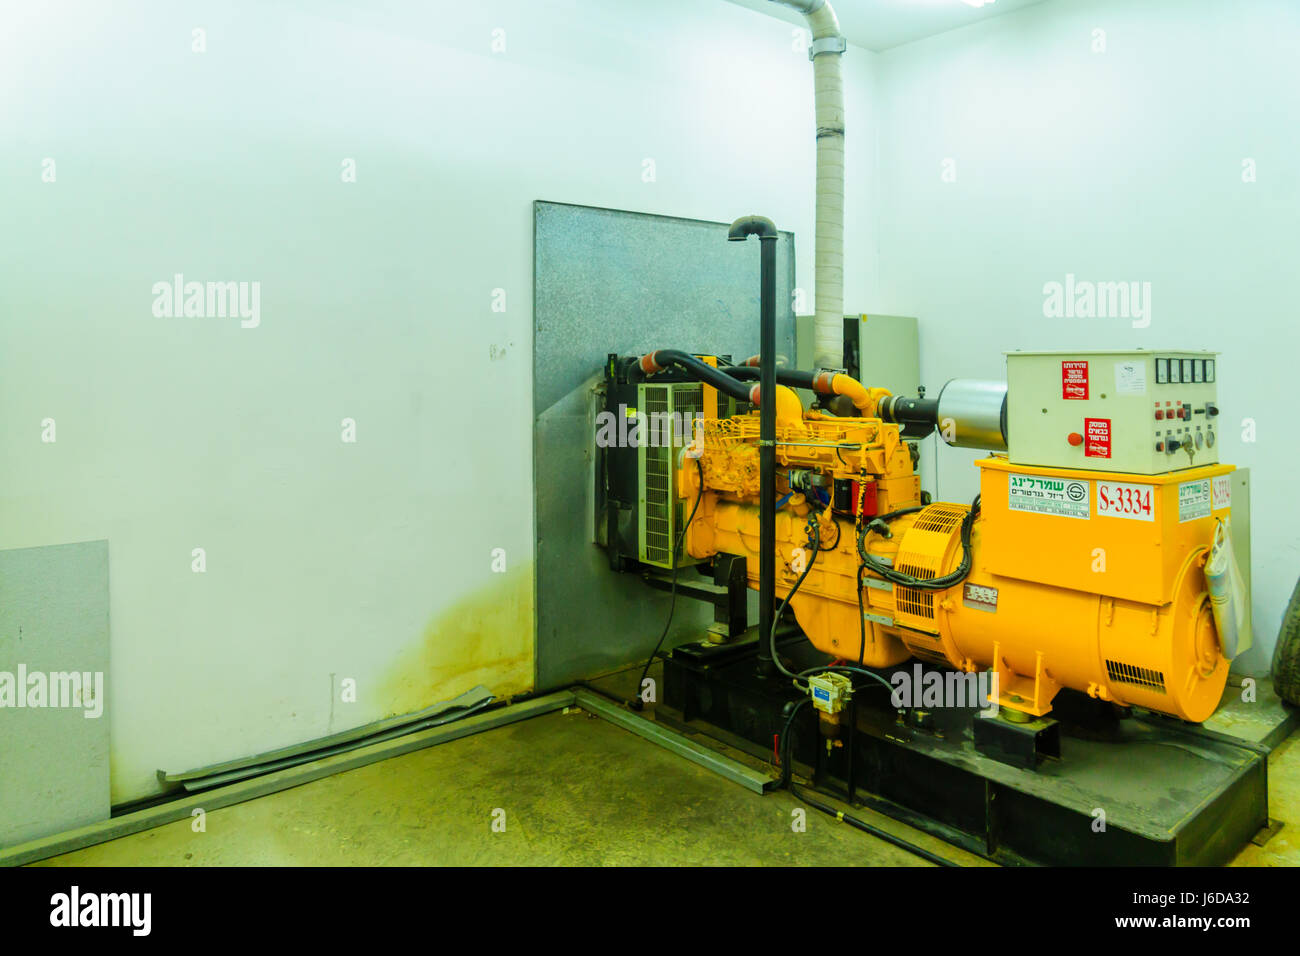 TEL-AVIV, ISRAEL - MAY 18, 2017: A backup generator, part of a pumping station that provide proper water pressure, - Stock Image